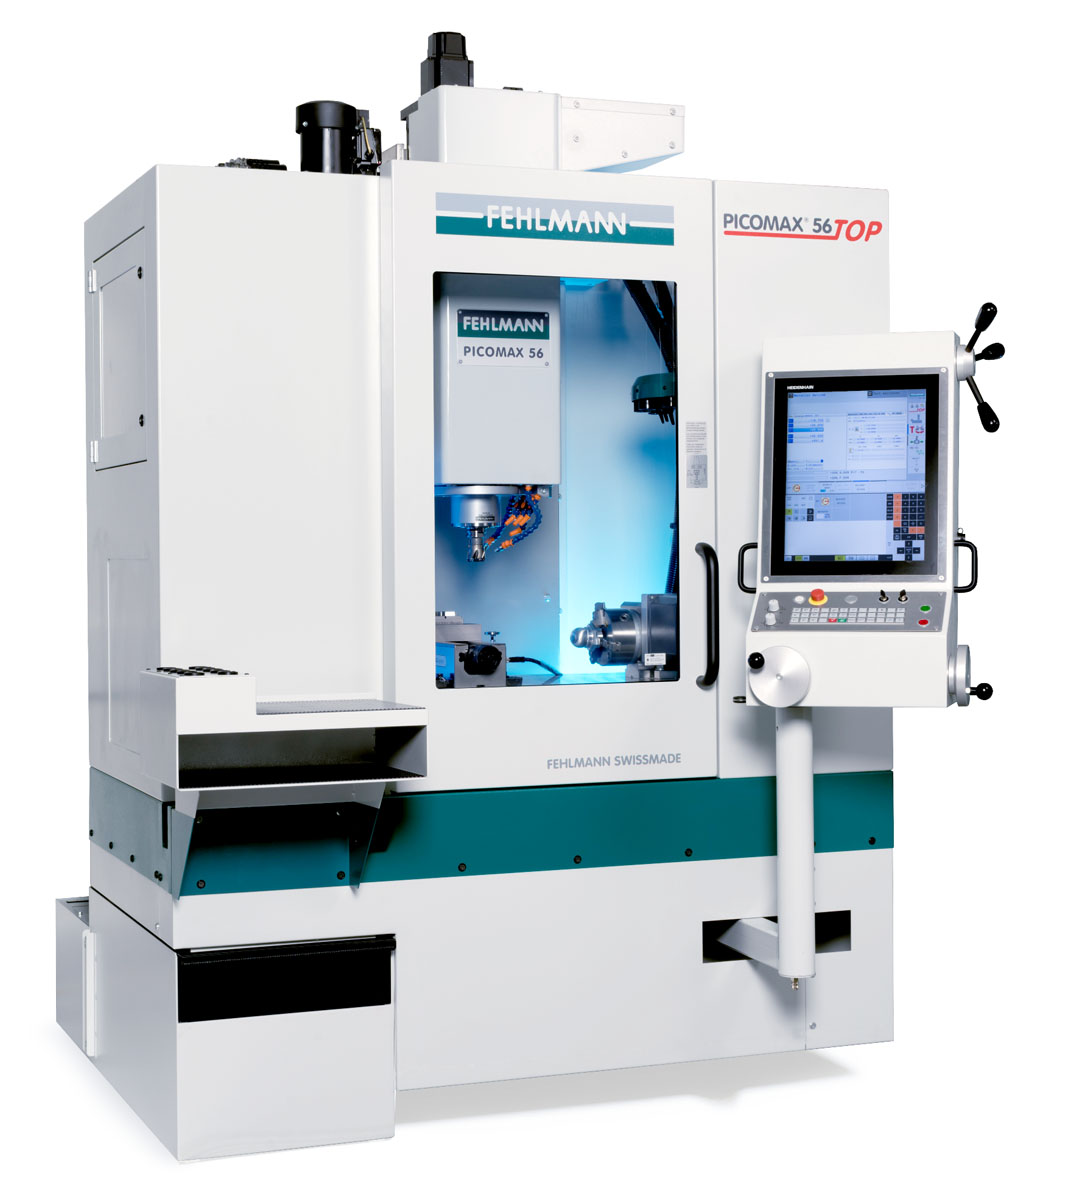 PICOMAX 56 TOP – the TOP machine for manual and CNC operations